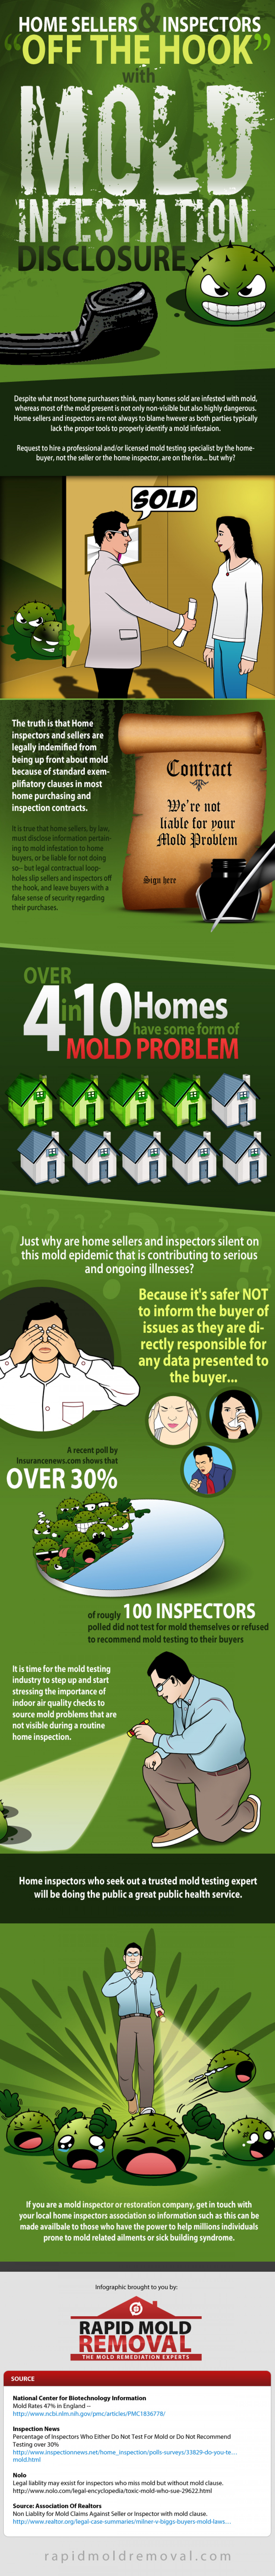 MOLD INFESTATION Disclosure Infographic